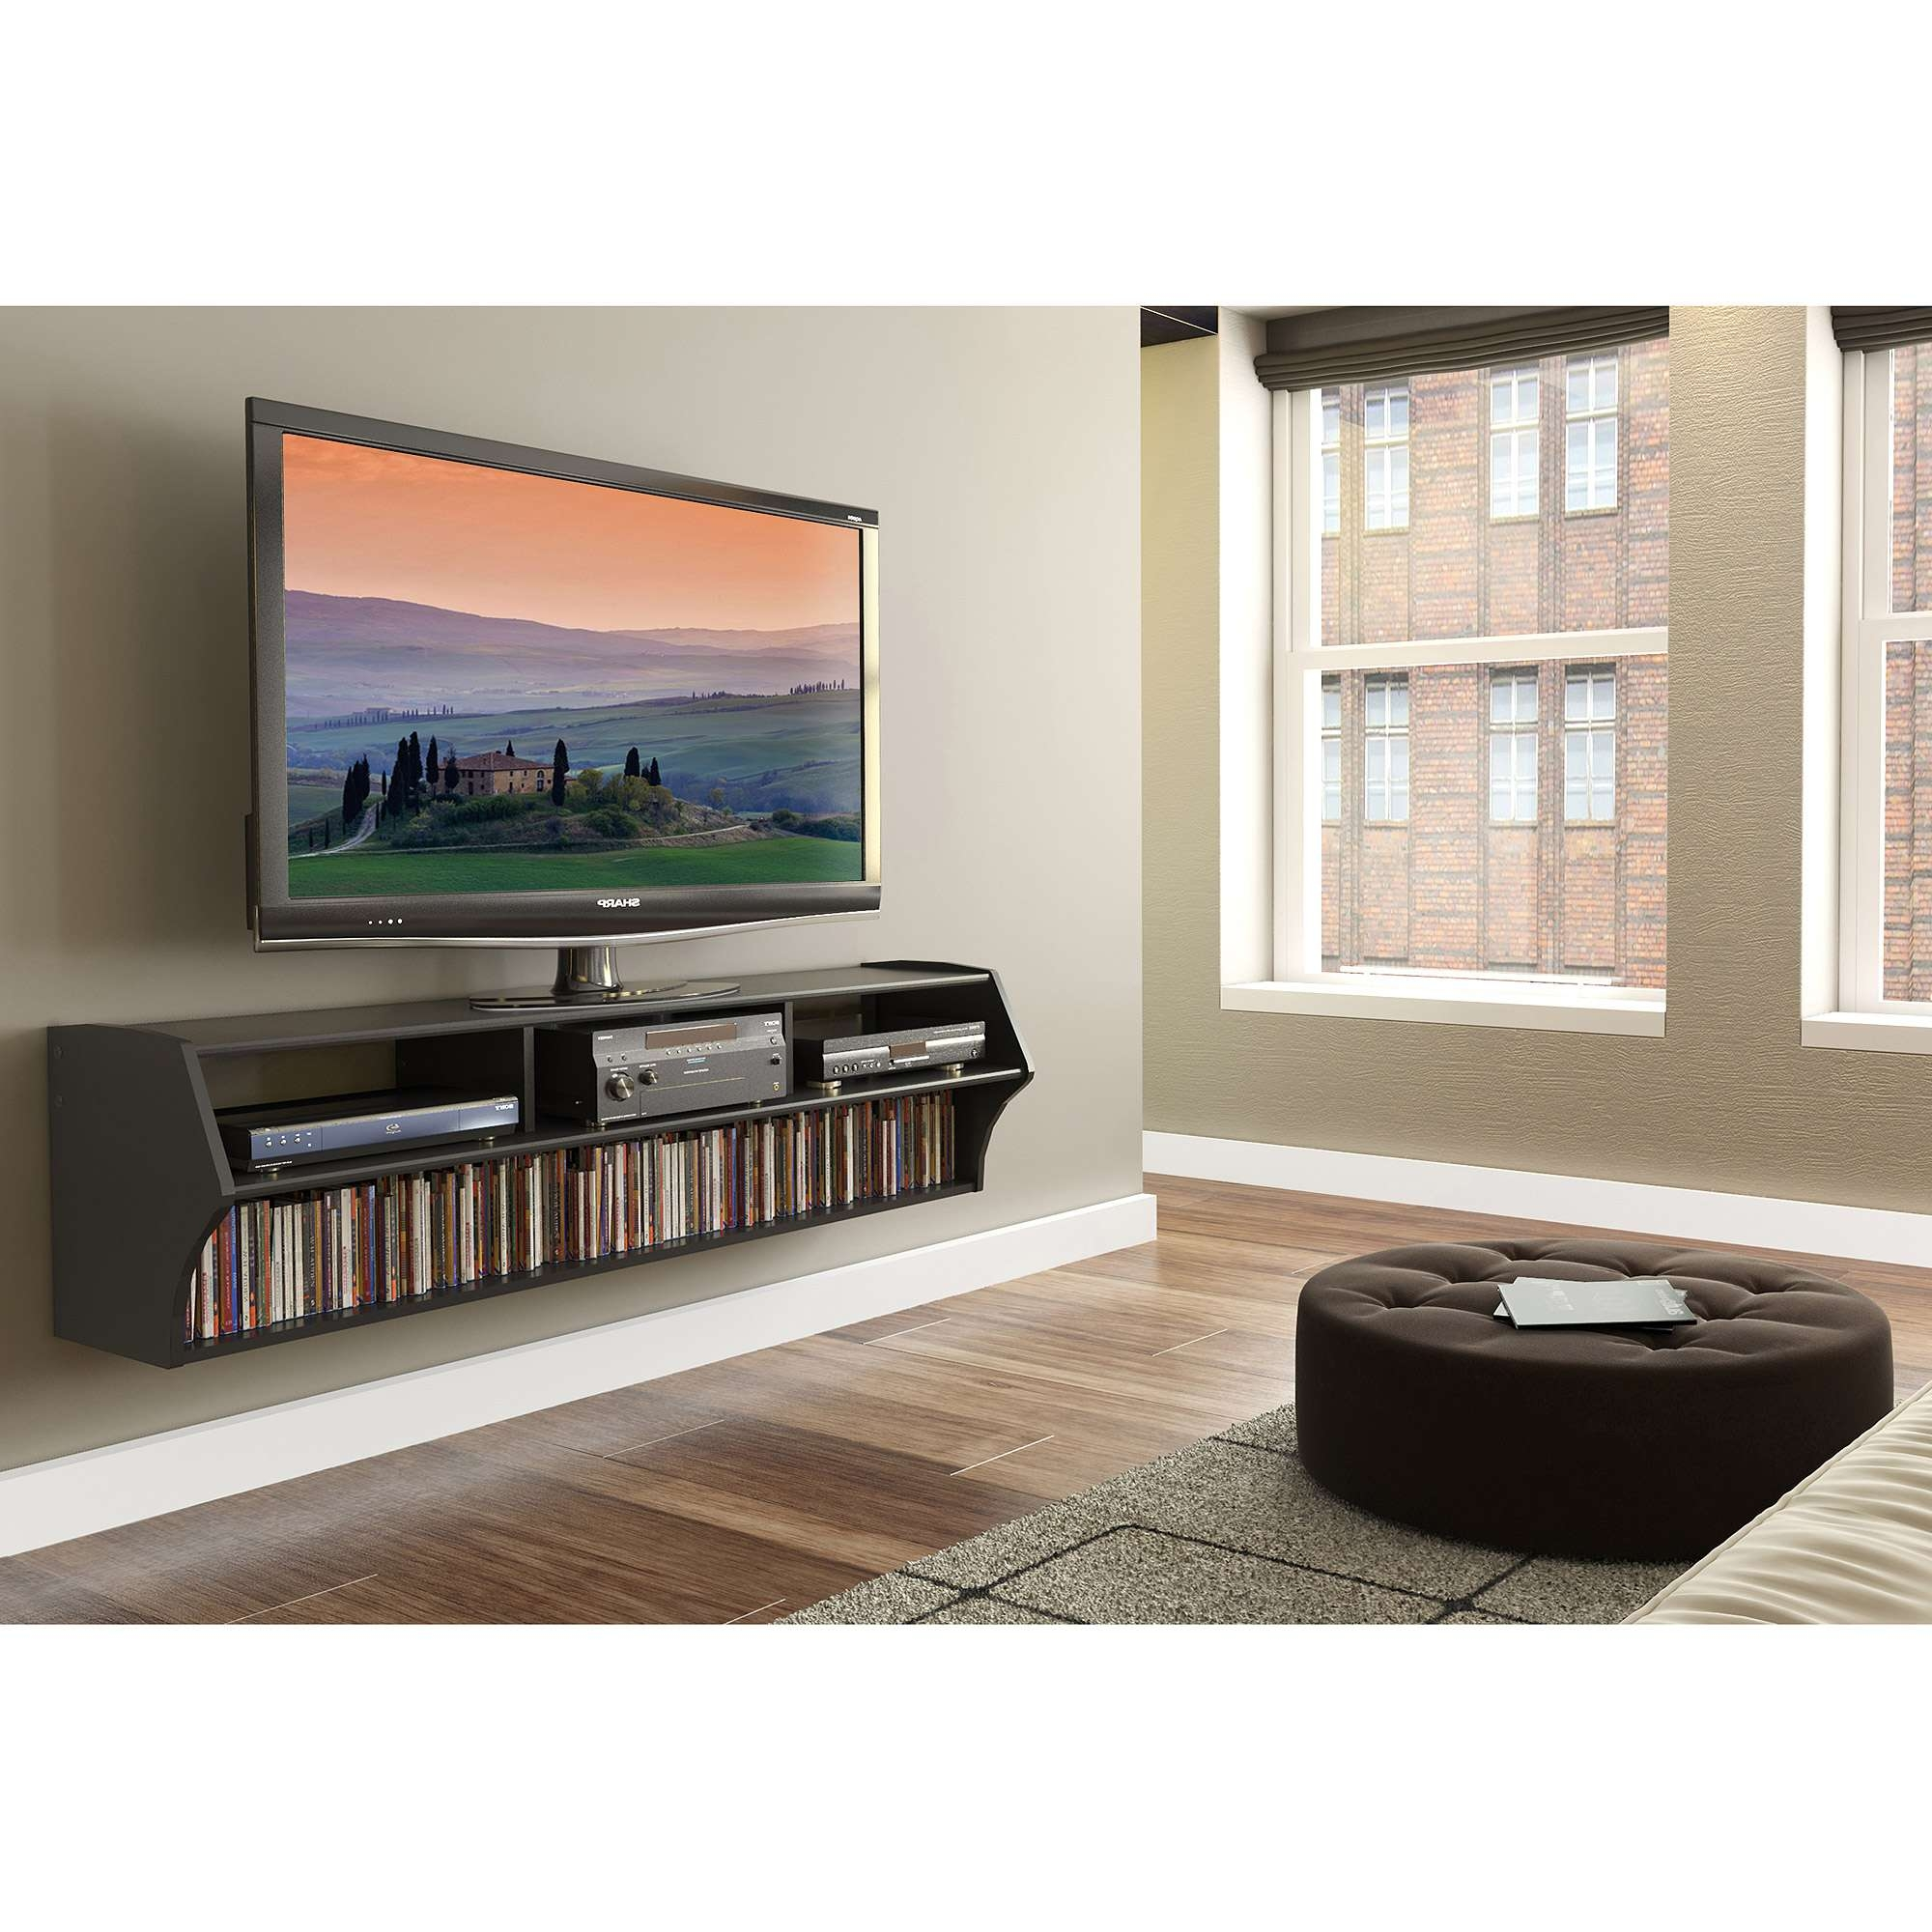 Tv : Trendy Tv Stand With Mount John Lewis Sweet Tv Stands With In Trendy Tv Stands (View 10 of 15)